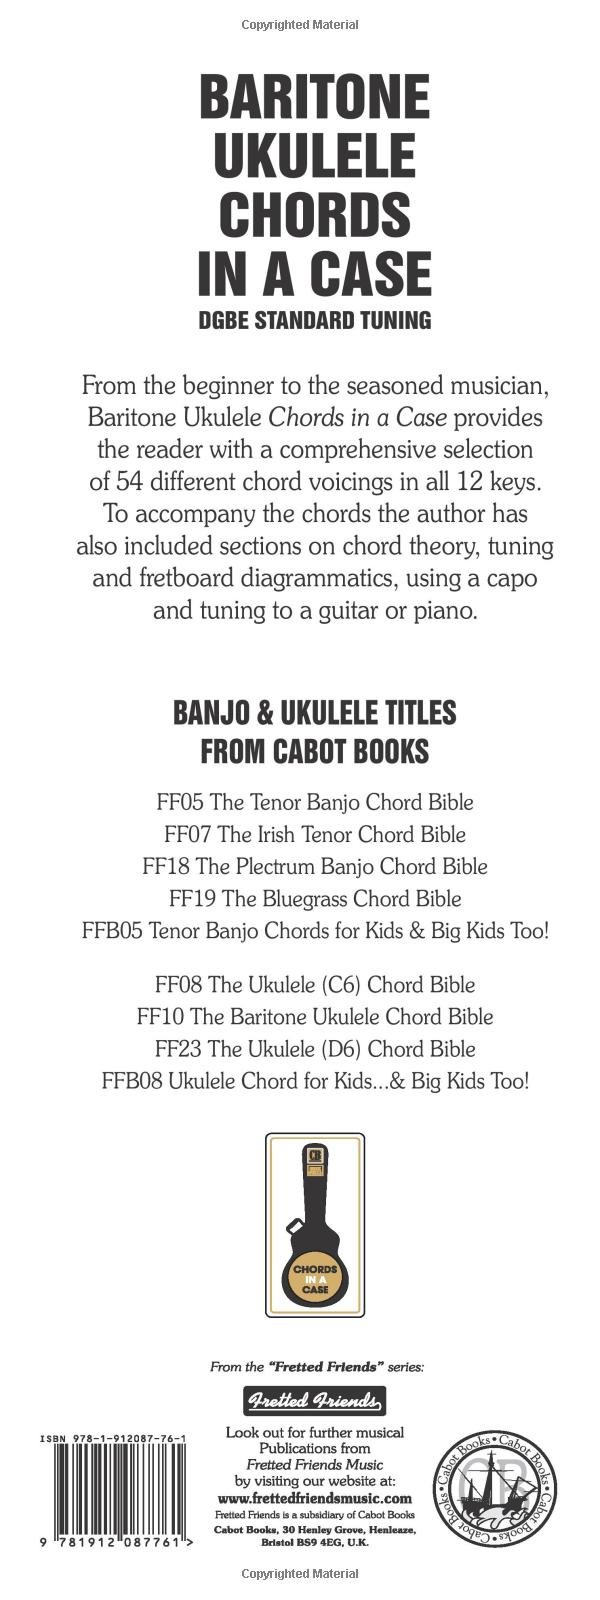 Baritone Ukulele Chords In A Case Dgbe Standard Tuning Uke Fretboard Diagram 1512 All Keys Fretted Friends 9781912087761 Tobe